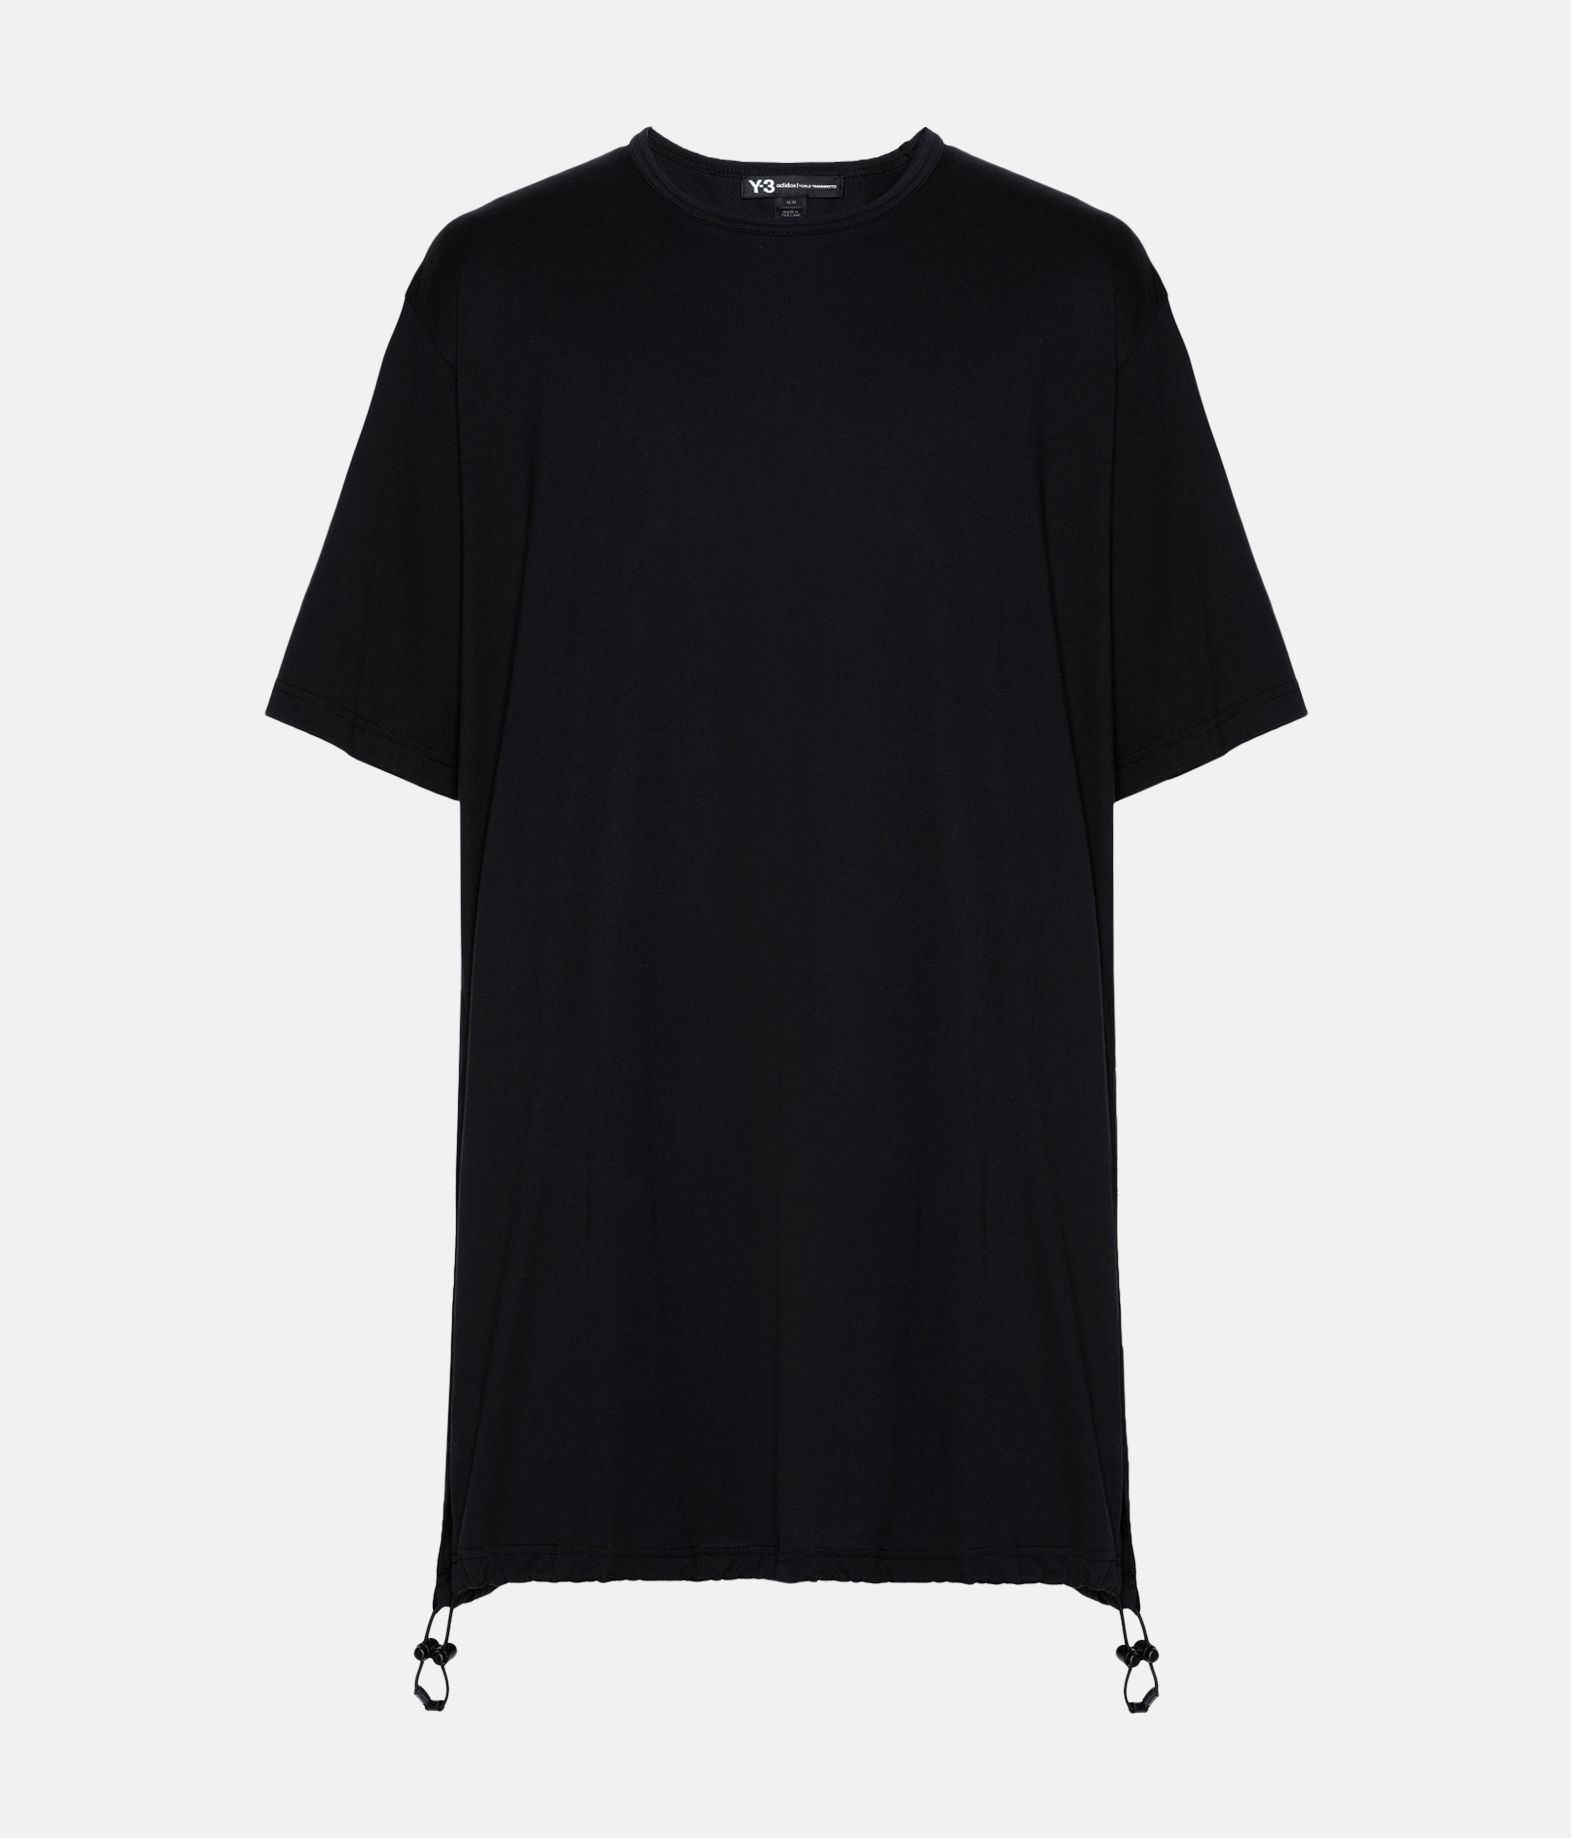 Y-3 Y-3 Drawstring Long Tee  Short sleeve t-shirt Man f